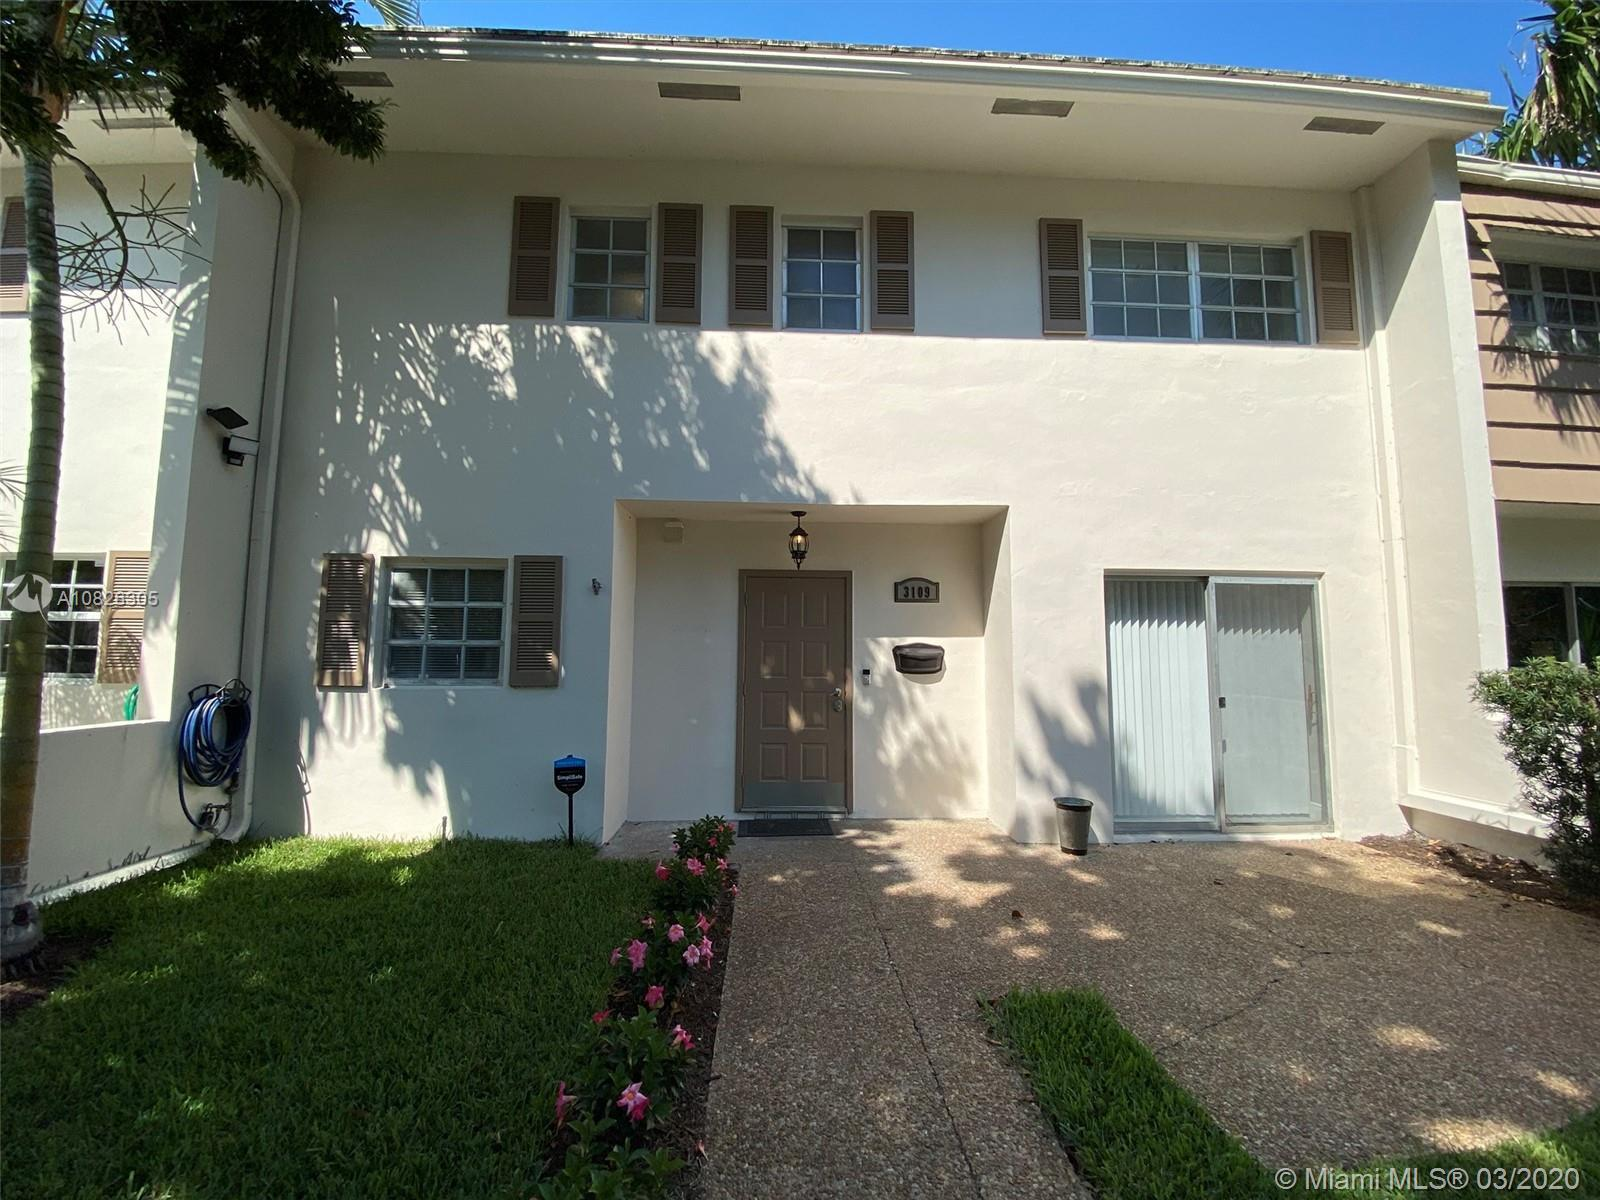 Beautiful/modern large 2 story, 3 bedroom , 2 1/2 bath townhome with expansive back yard overlooking